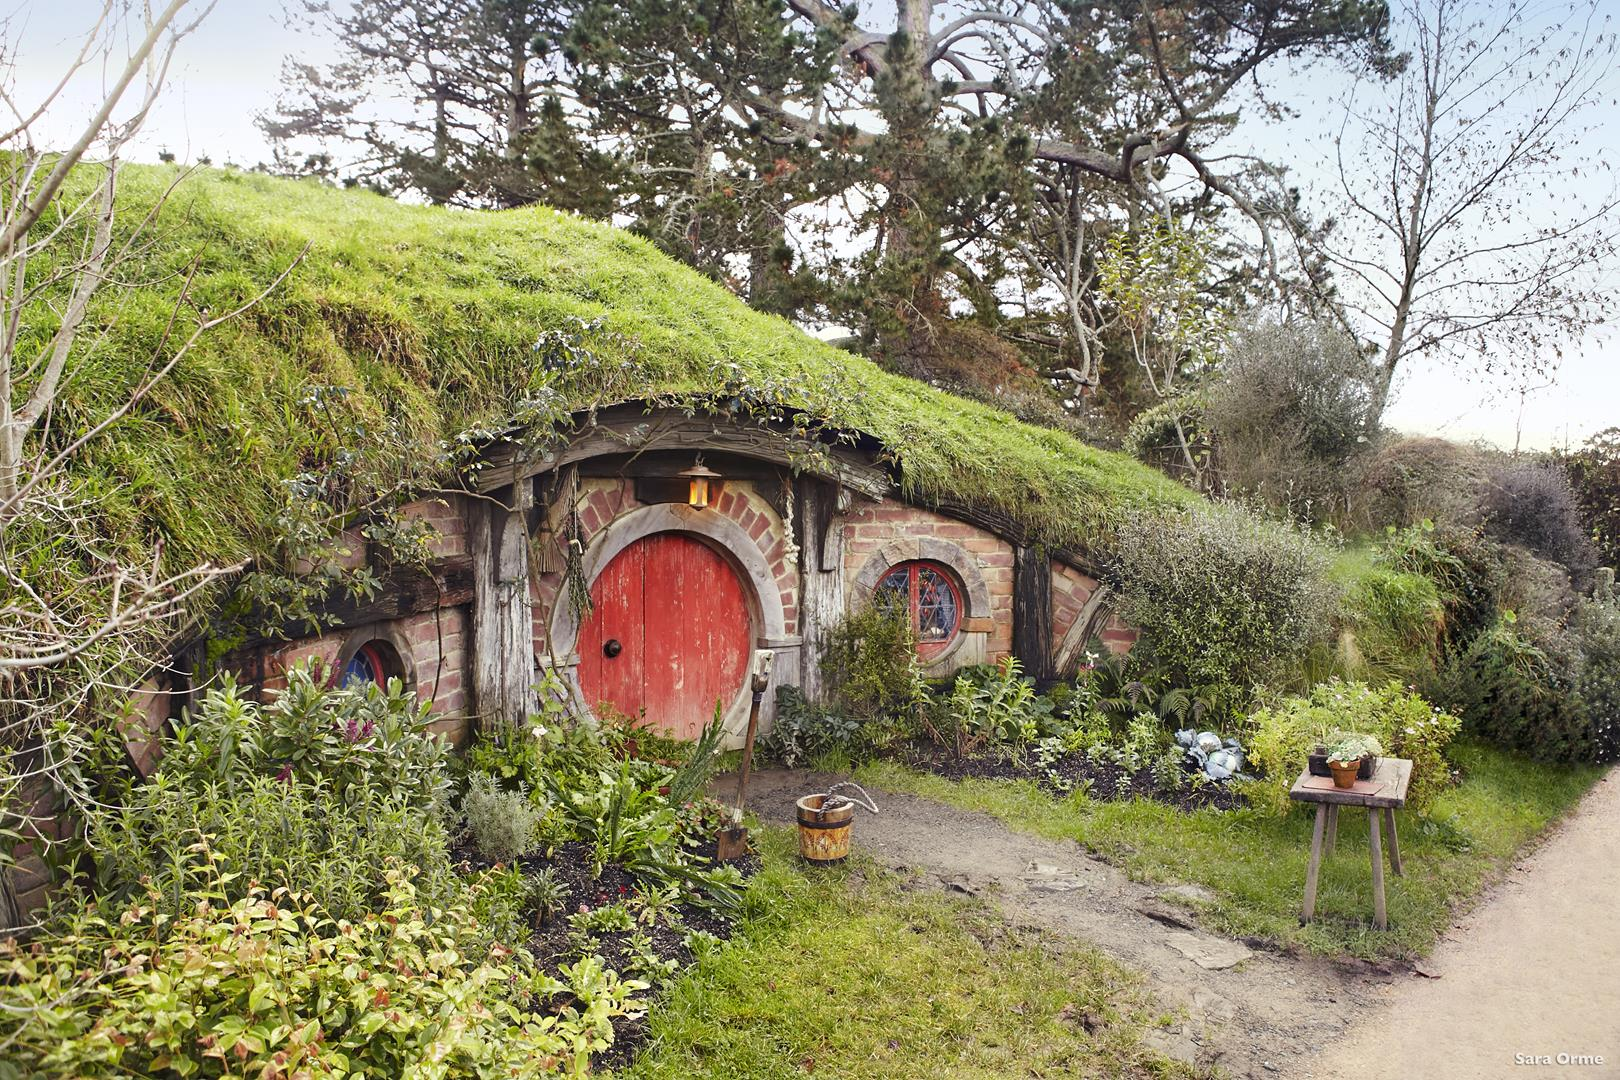 Tours of the Hobbiton Movie Set near Matamata captivate fans of the Hobbit trilogies